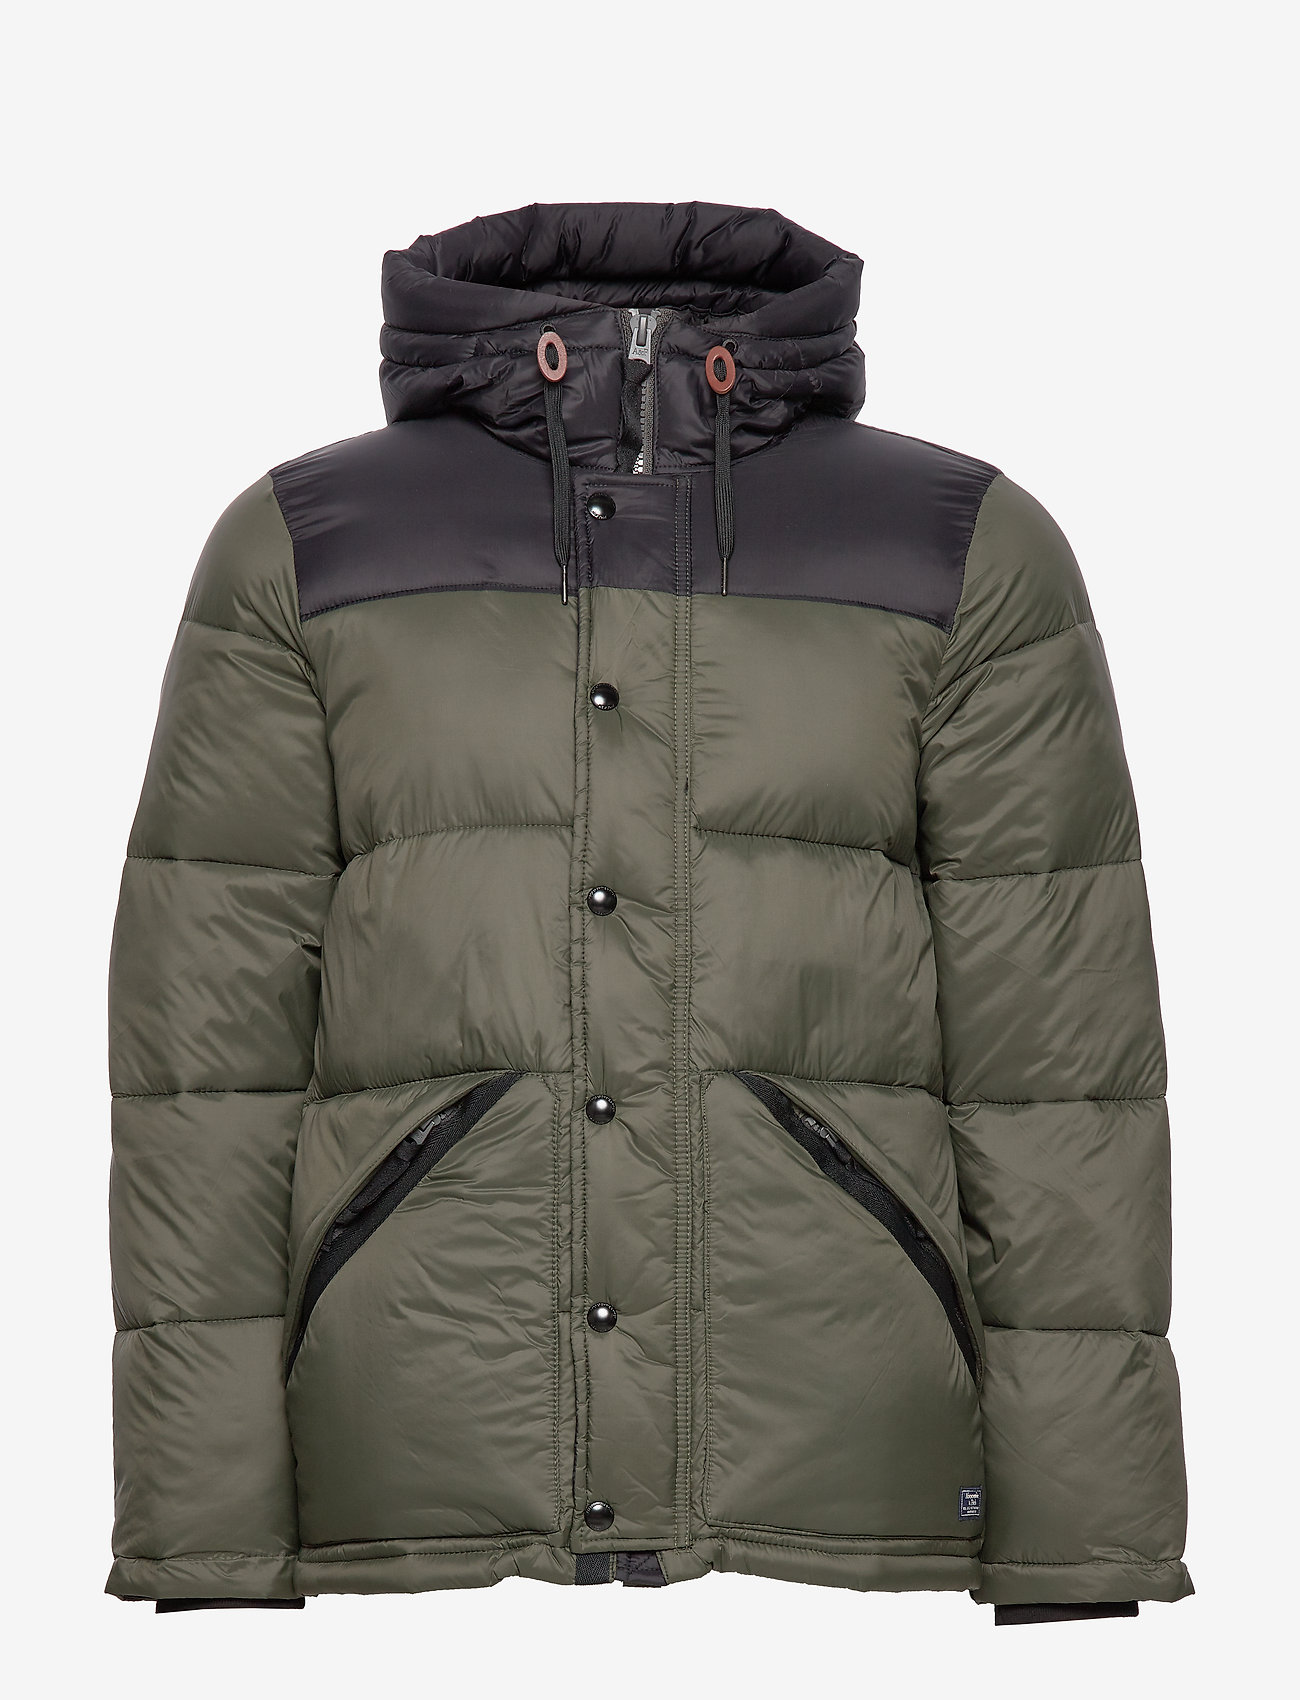 Abercrombie & Fitch Ultra Puffer - Jackets & Coats